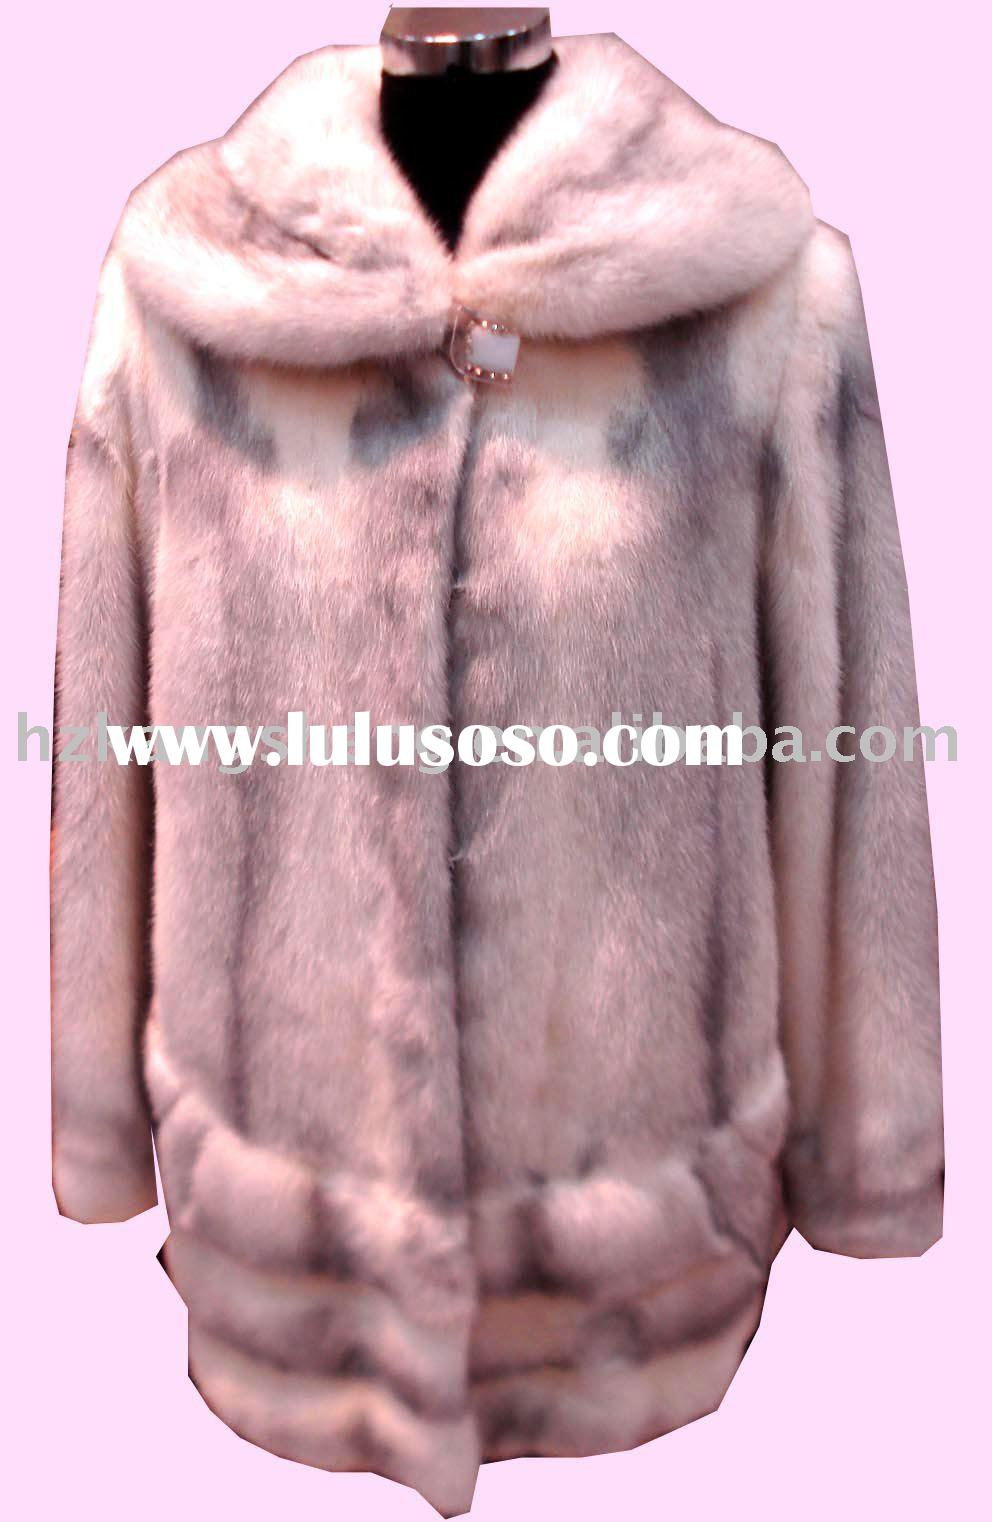 SELL LADIES FASHION DEMARK MINK FUR SKIN GARMENT,DENMARK MINK FUR SKIN JACKET,DENMARK MINK FUR SKIN